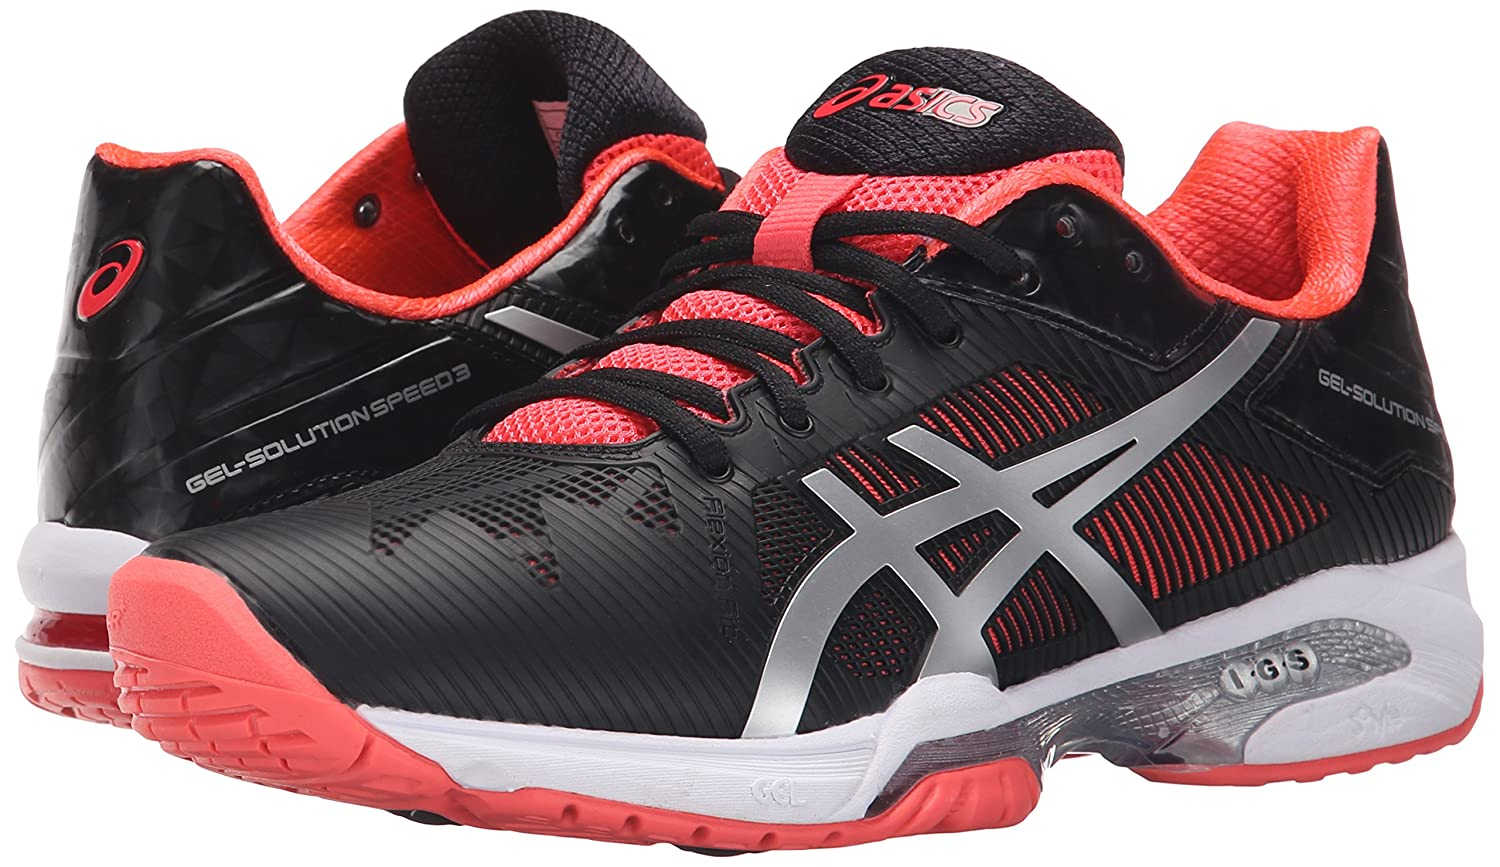 ASICS Women's Gel-Solution B00ZCFCLJ6 Speed 3 Tennis Shoe B00ZCFCLJ6 Gel-Solution 10 B(M) US|Black/Silver/Diva Pink fbfb48